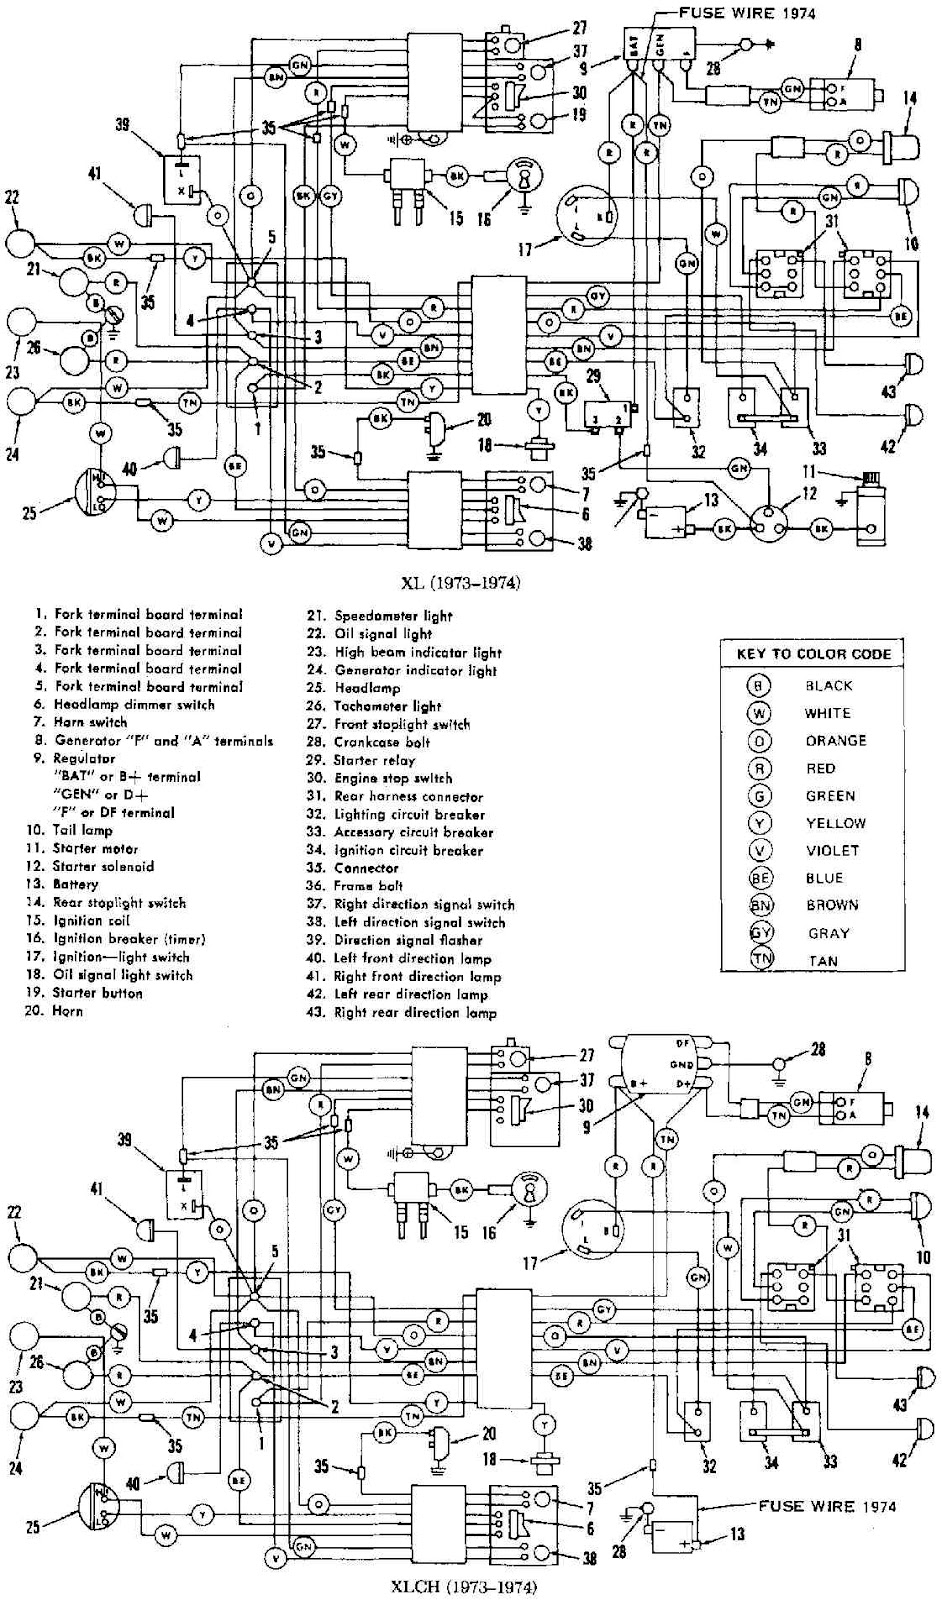 DOC] ➤ Diagram 1966 Harley Davidson Wiring Diagram Ebook ... Harley Sportster Wiring Schematic on